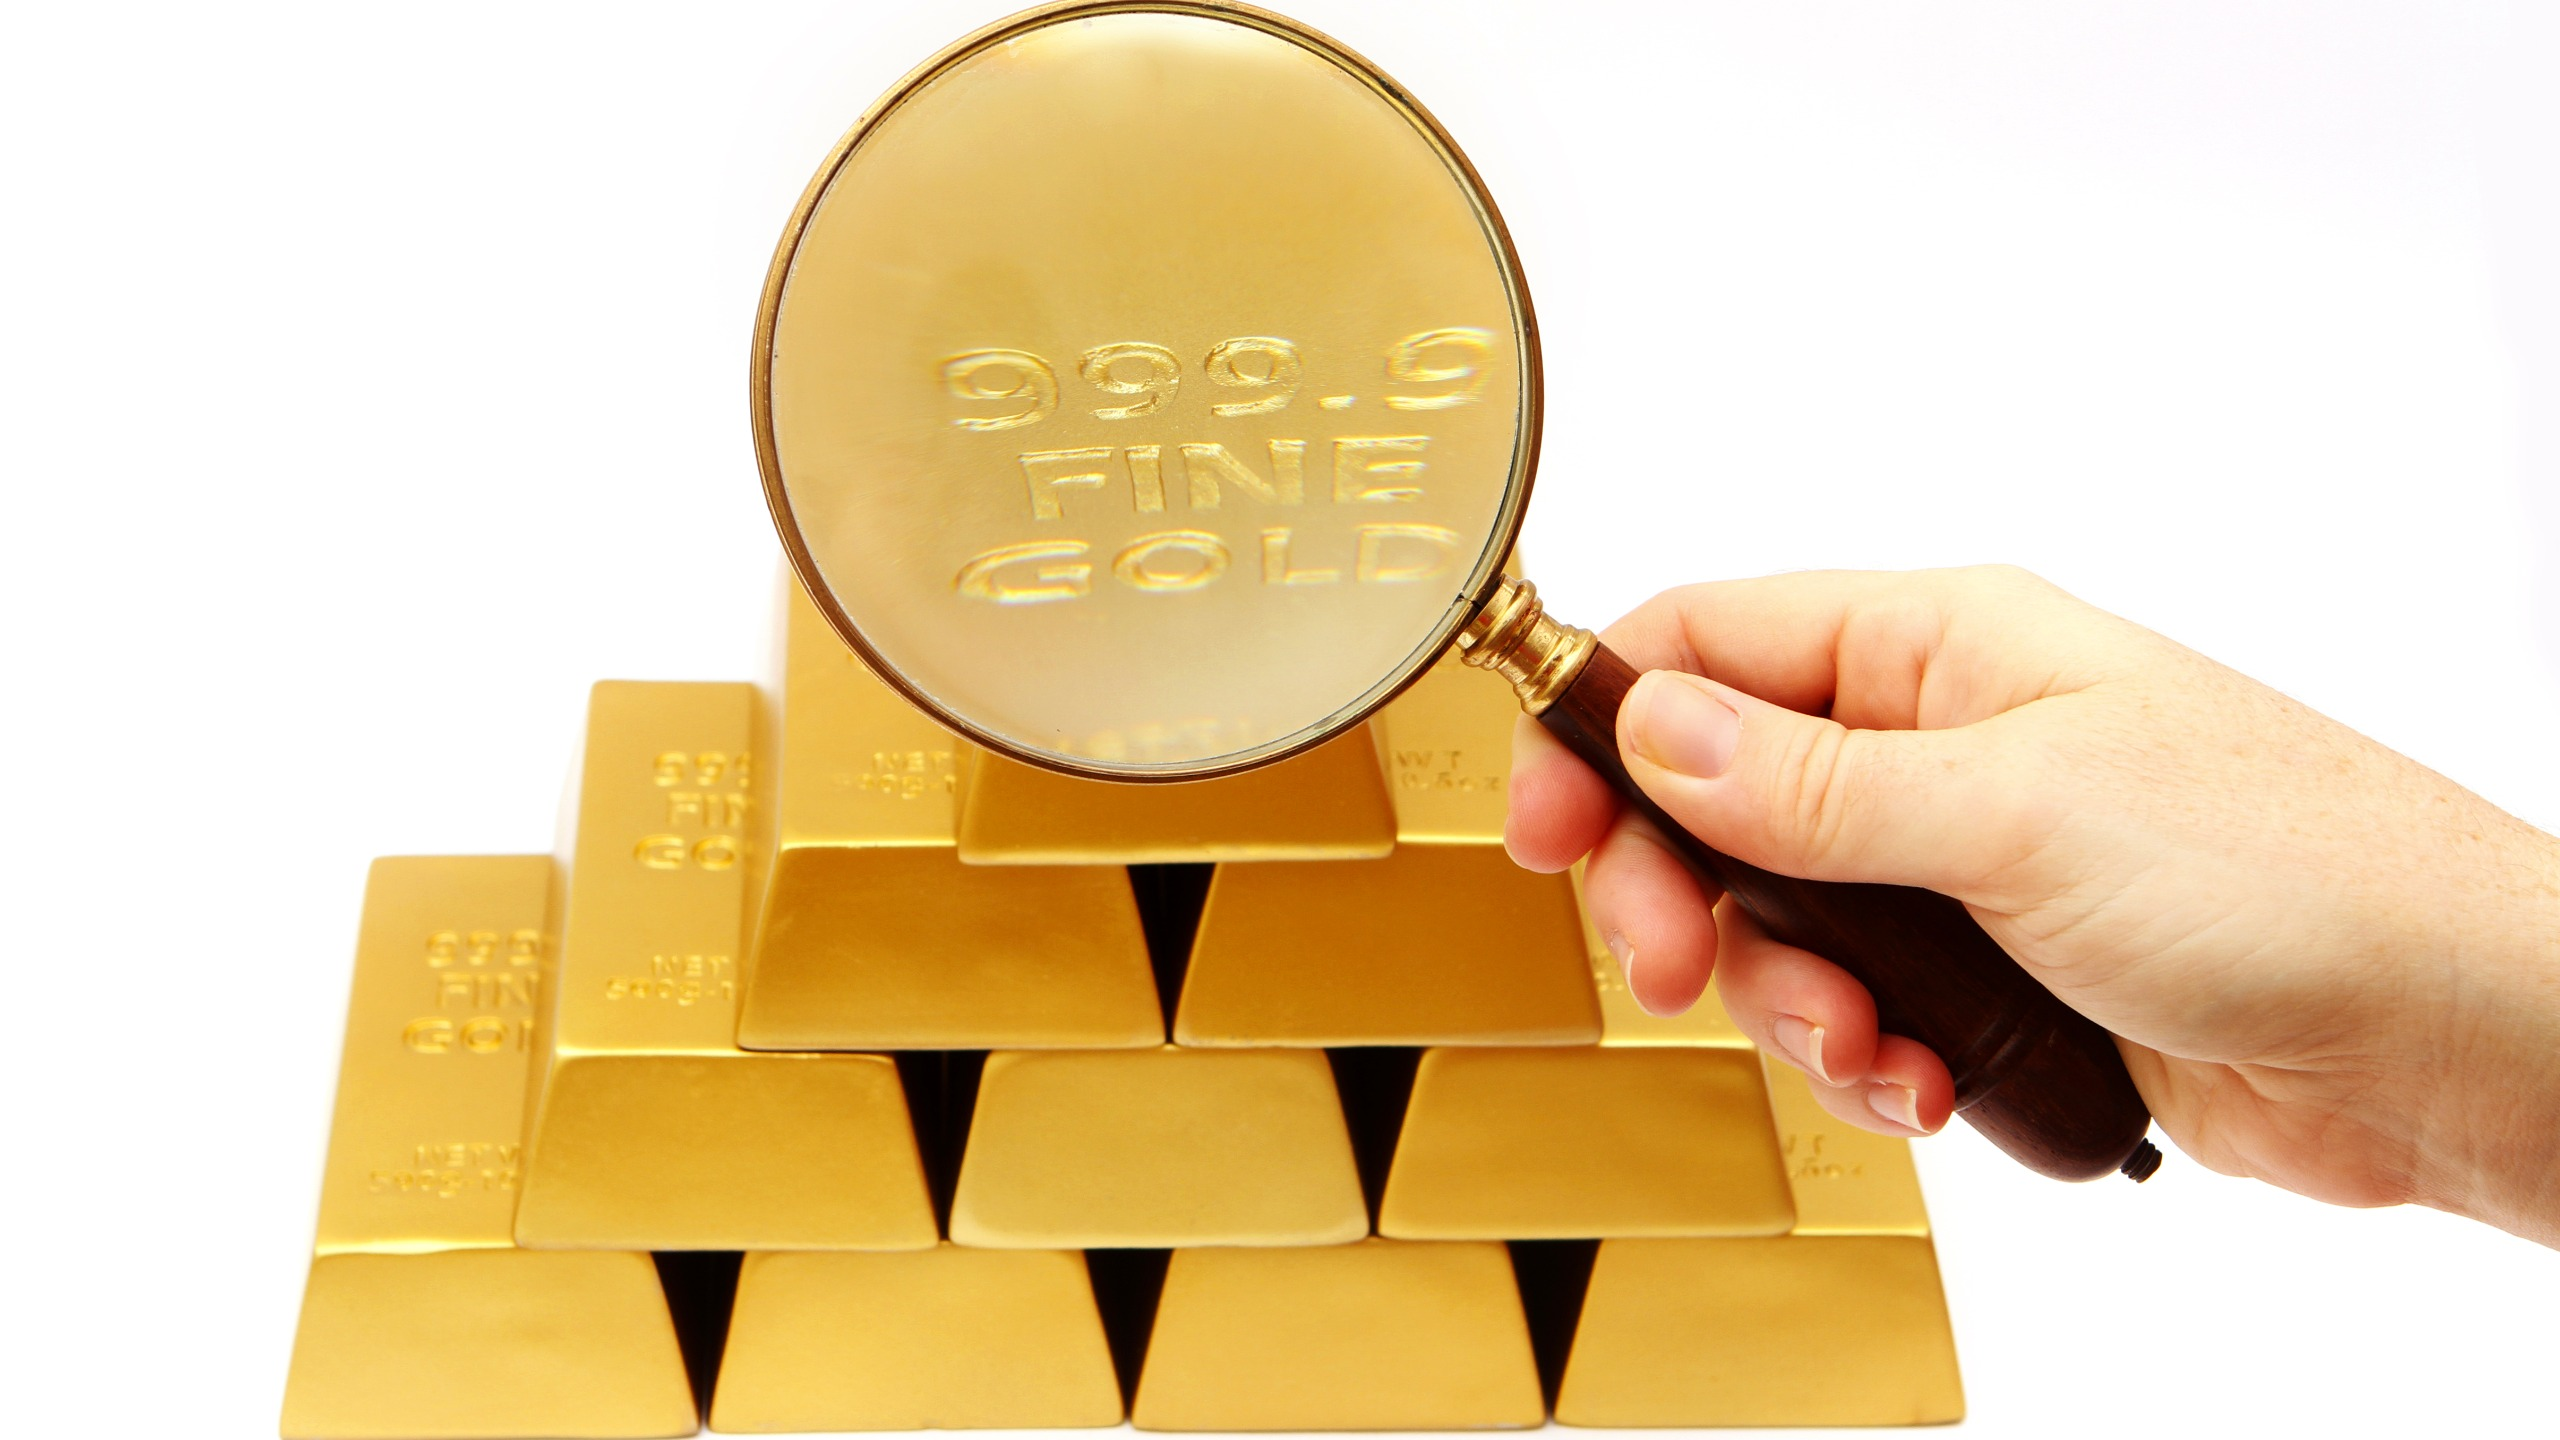 How To Detect Fake Bullion: A Guide for First-Time Buyers